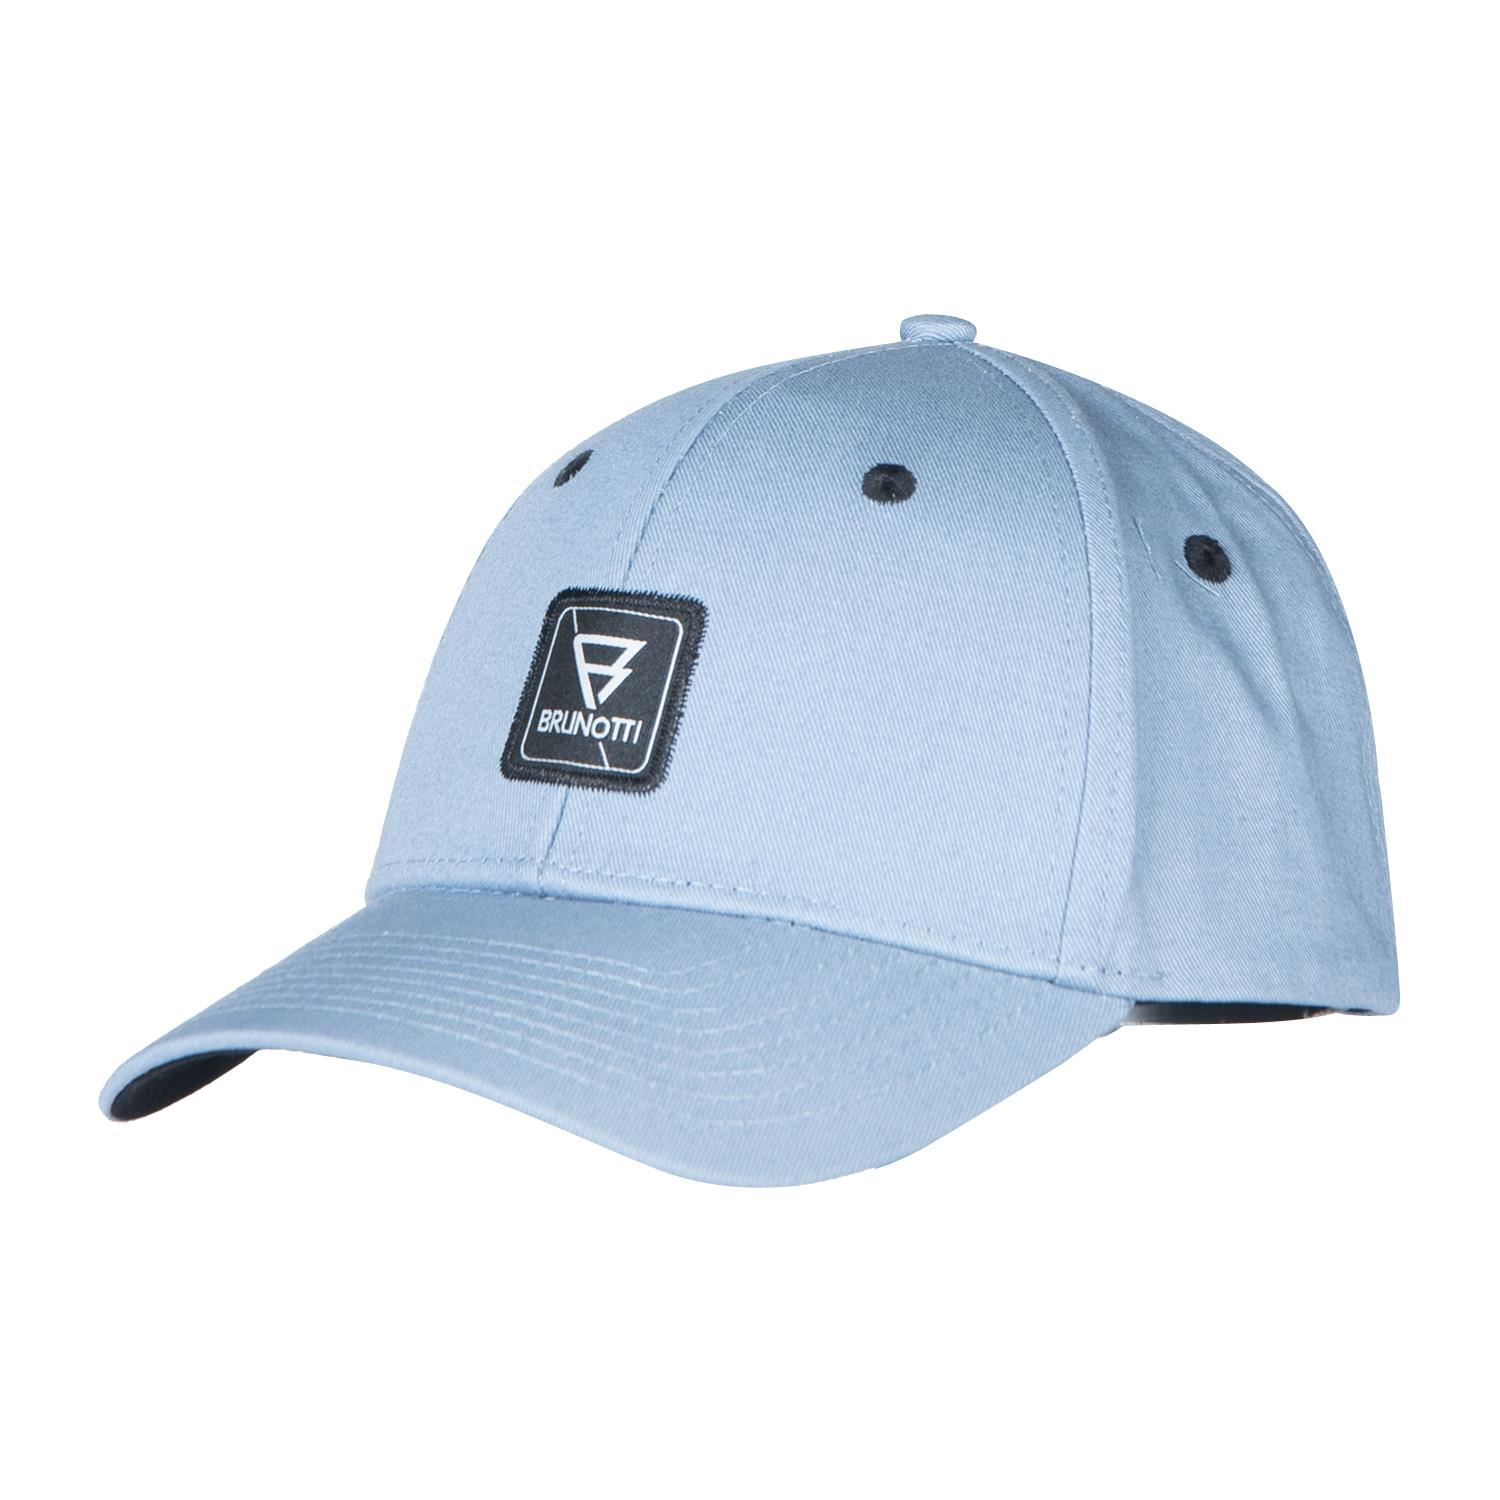 Brunotti Lincoln  (blau) - herren caps - Brunotti online shop